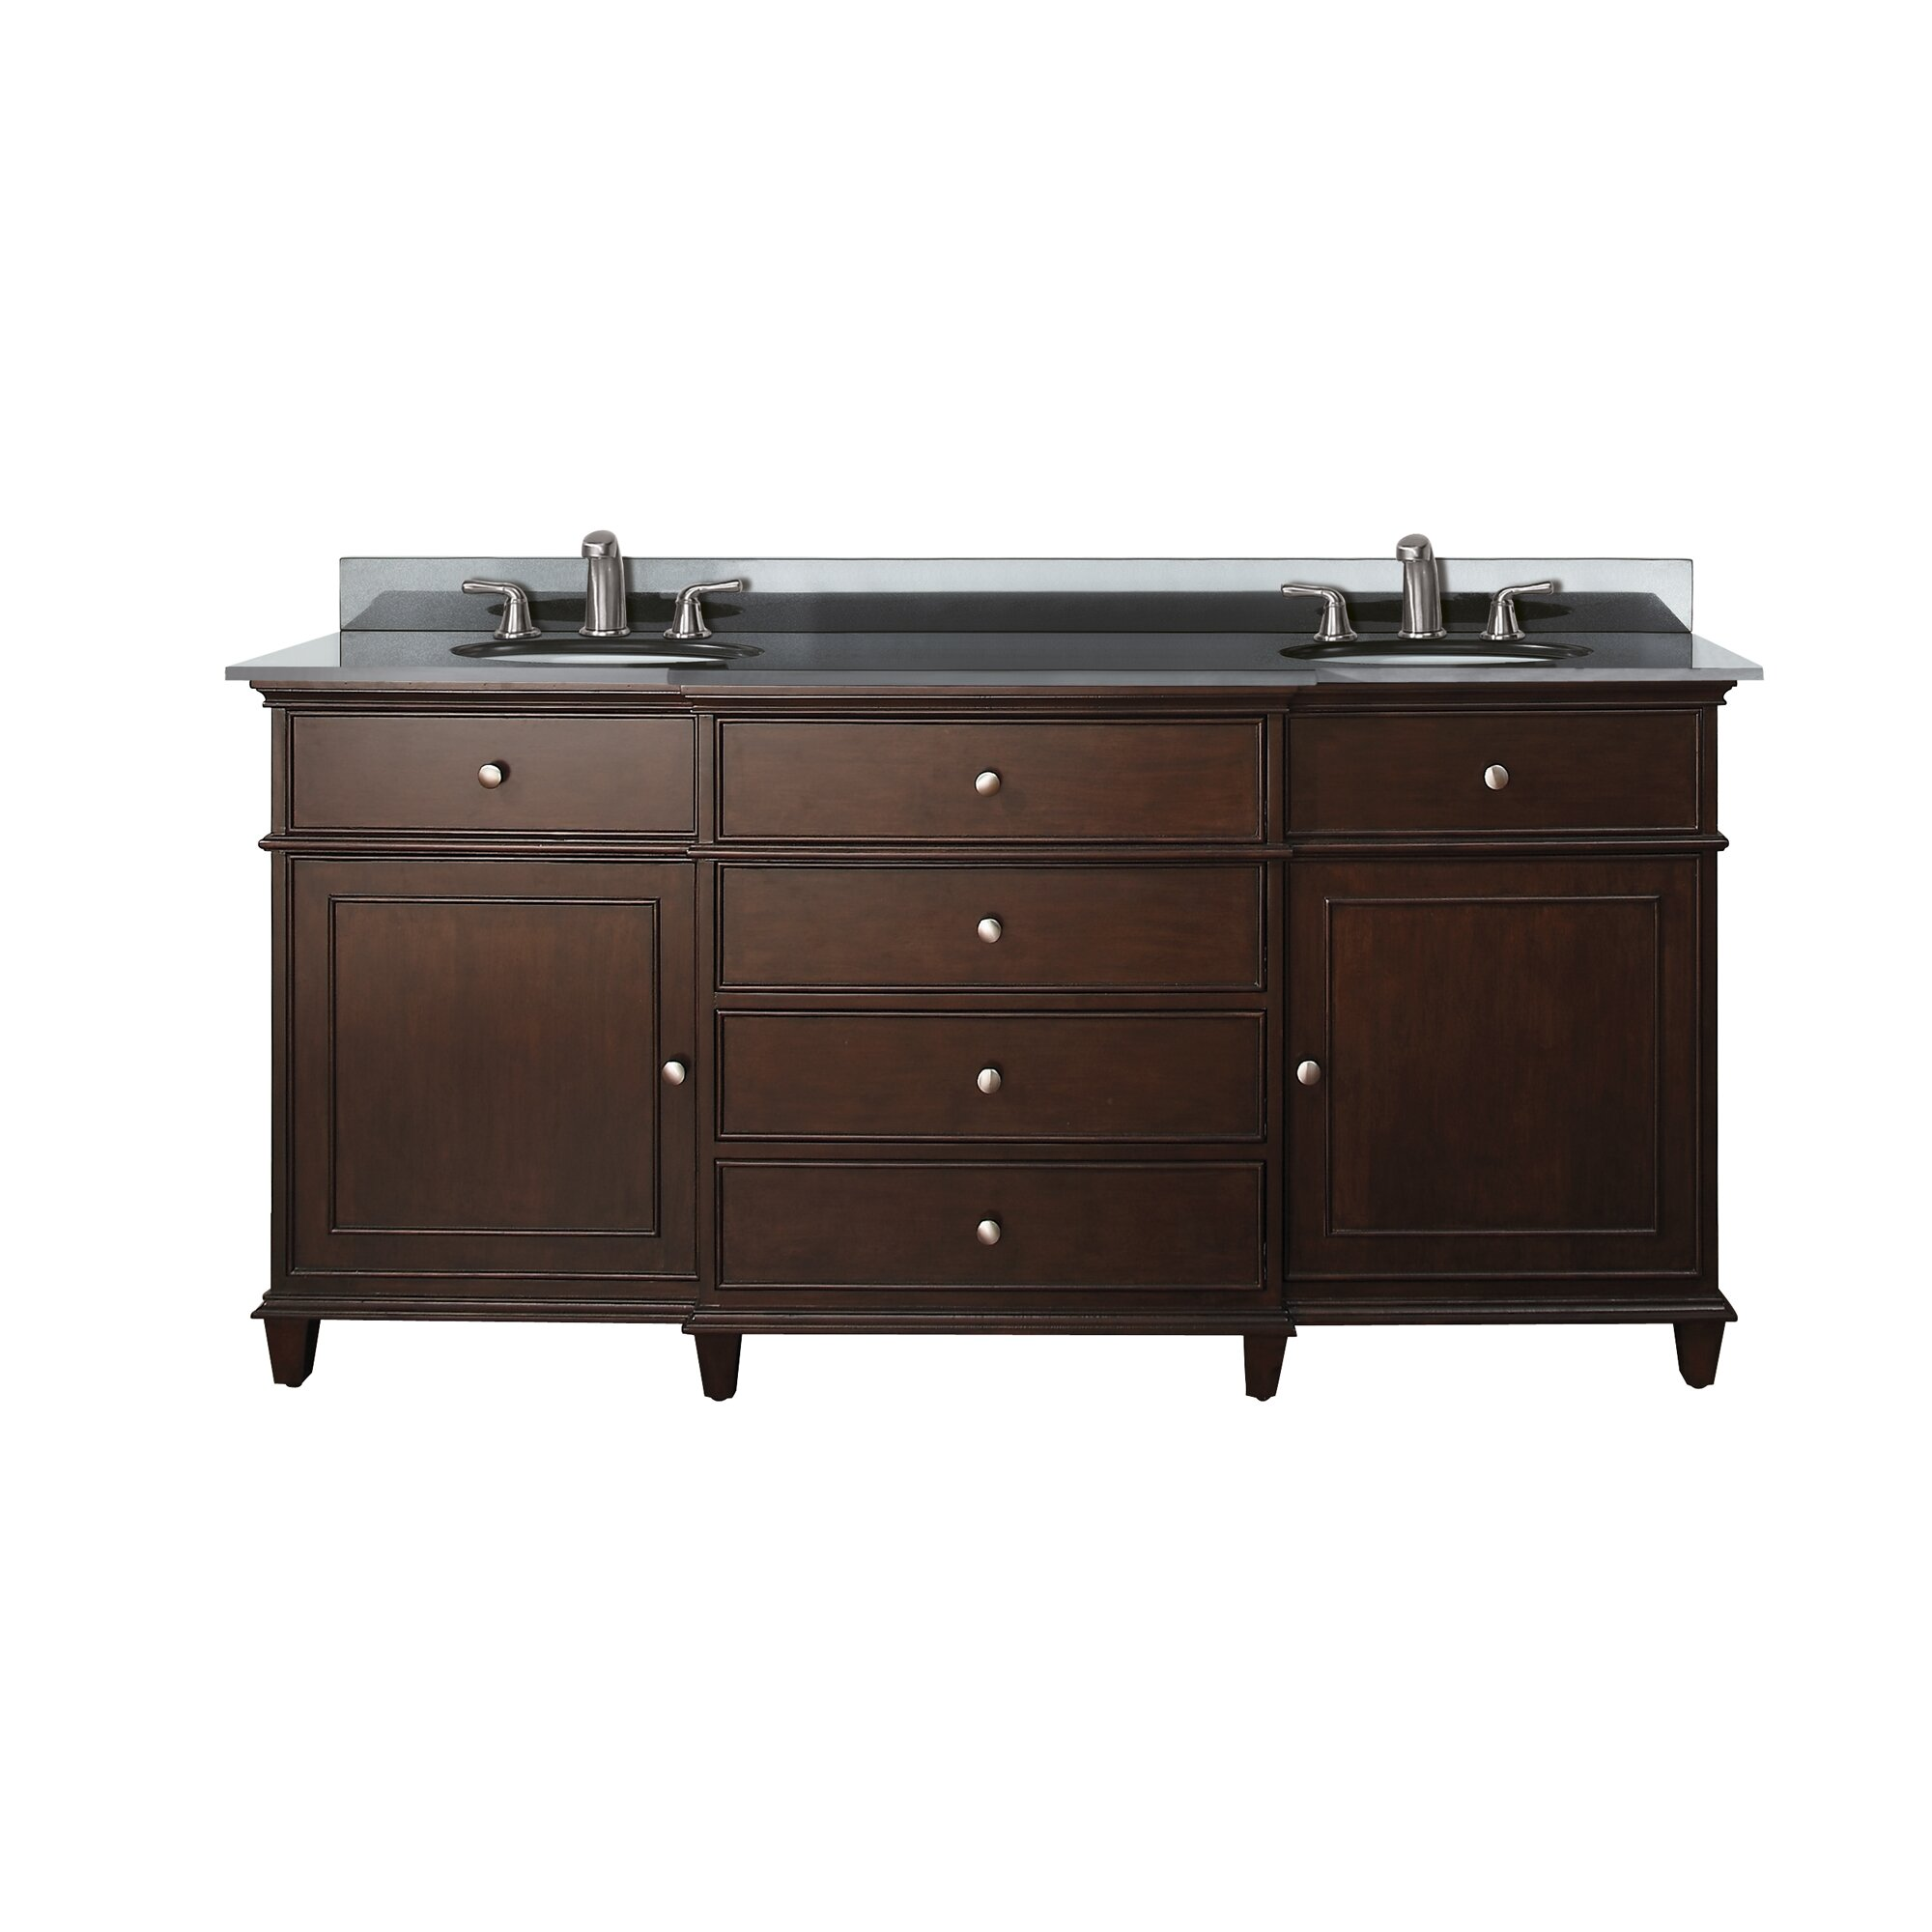 Custom Bathroom Vanities Tampa bathroom vanities tampa ~ dact